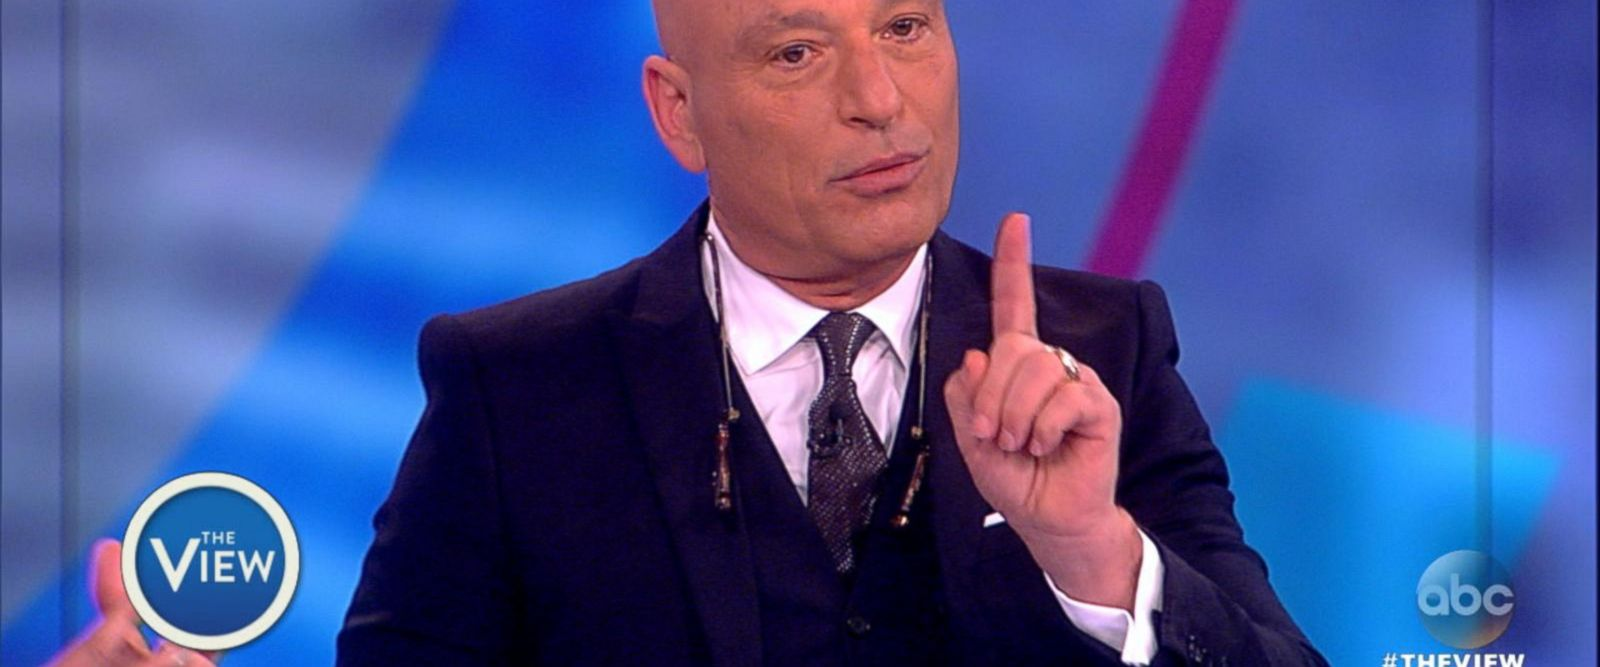 VIDEO: Howie Mandel asks Nick Cannon to 'come back' to 'America's Got Talent'